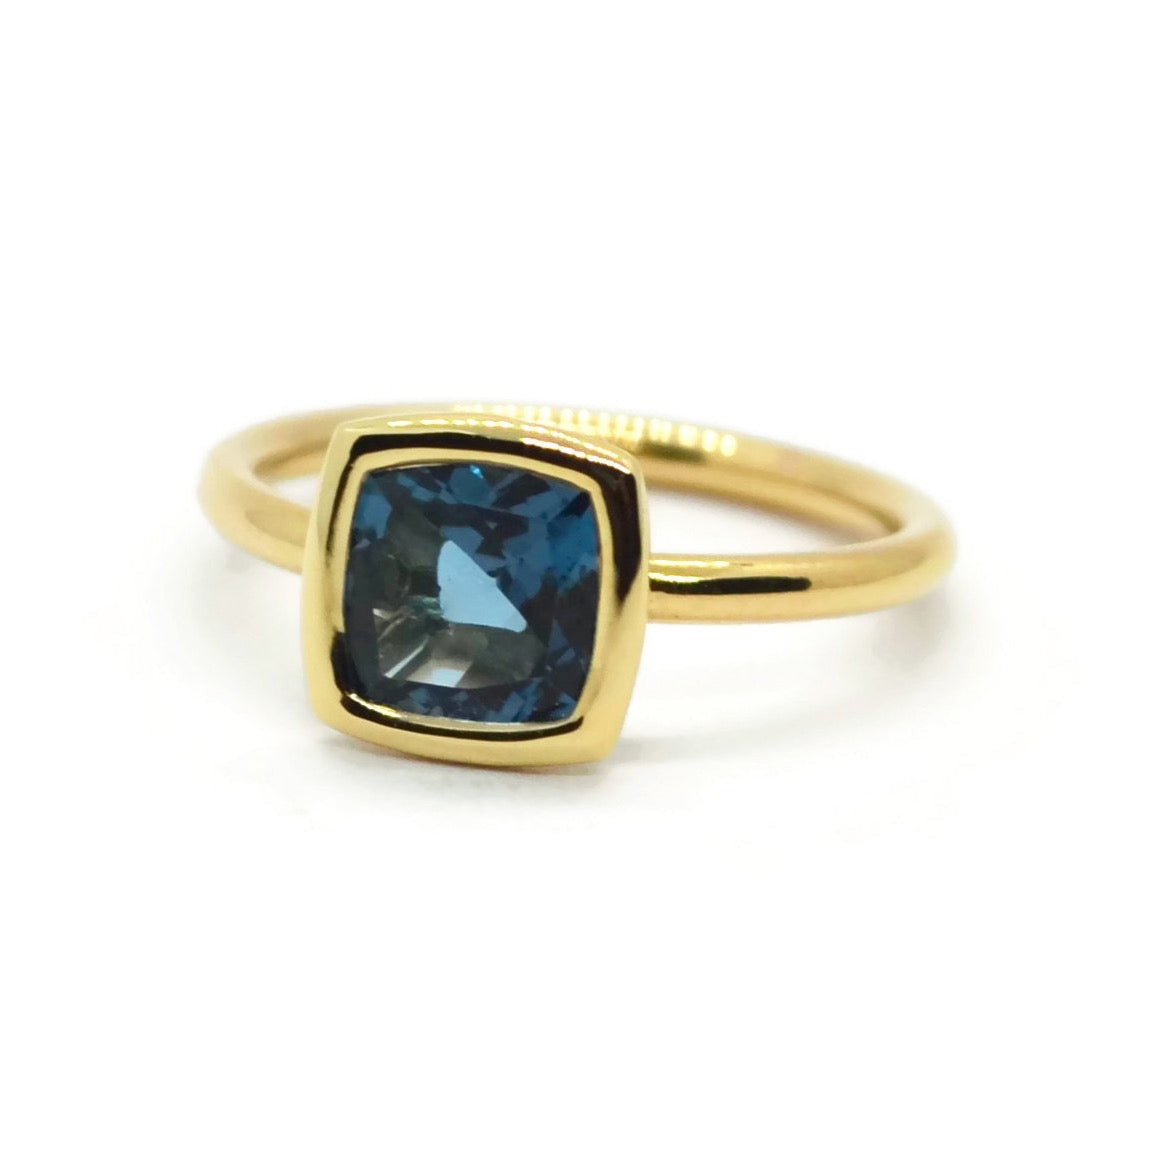 A & Furst - Gaia - Small Stackable Ring with London Blue Topaz, 18k Yellow Gold